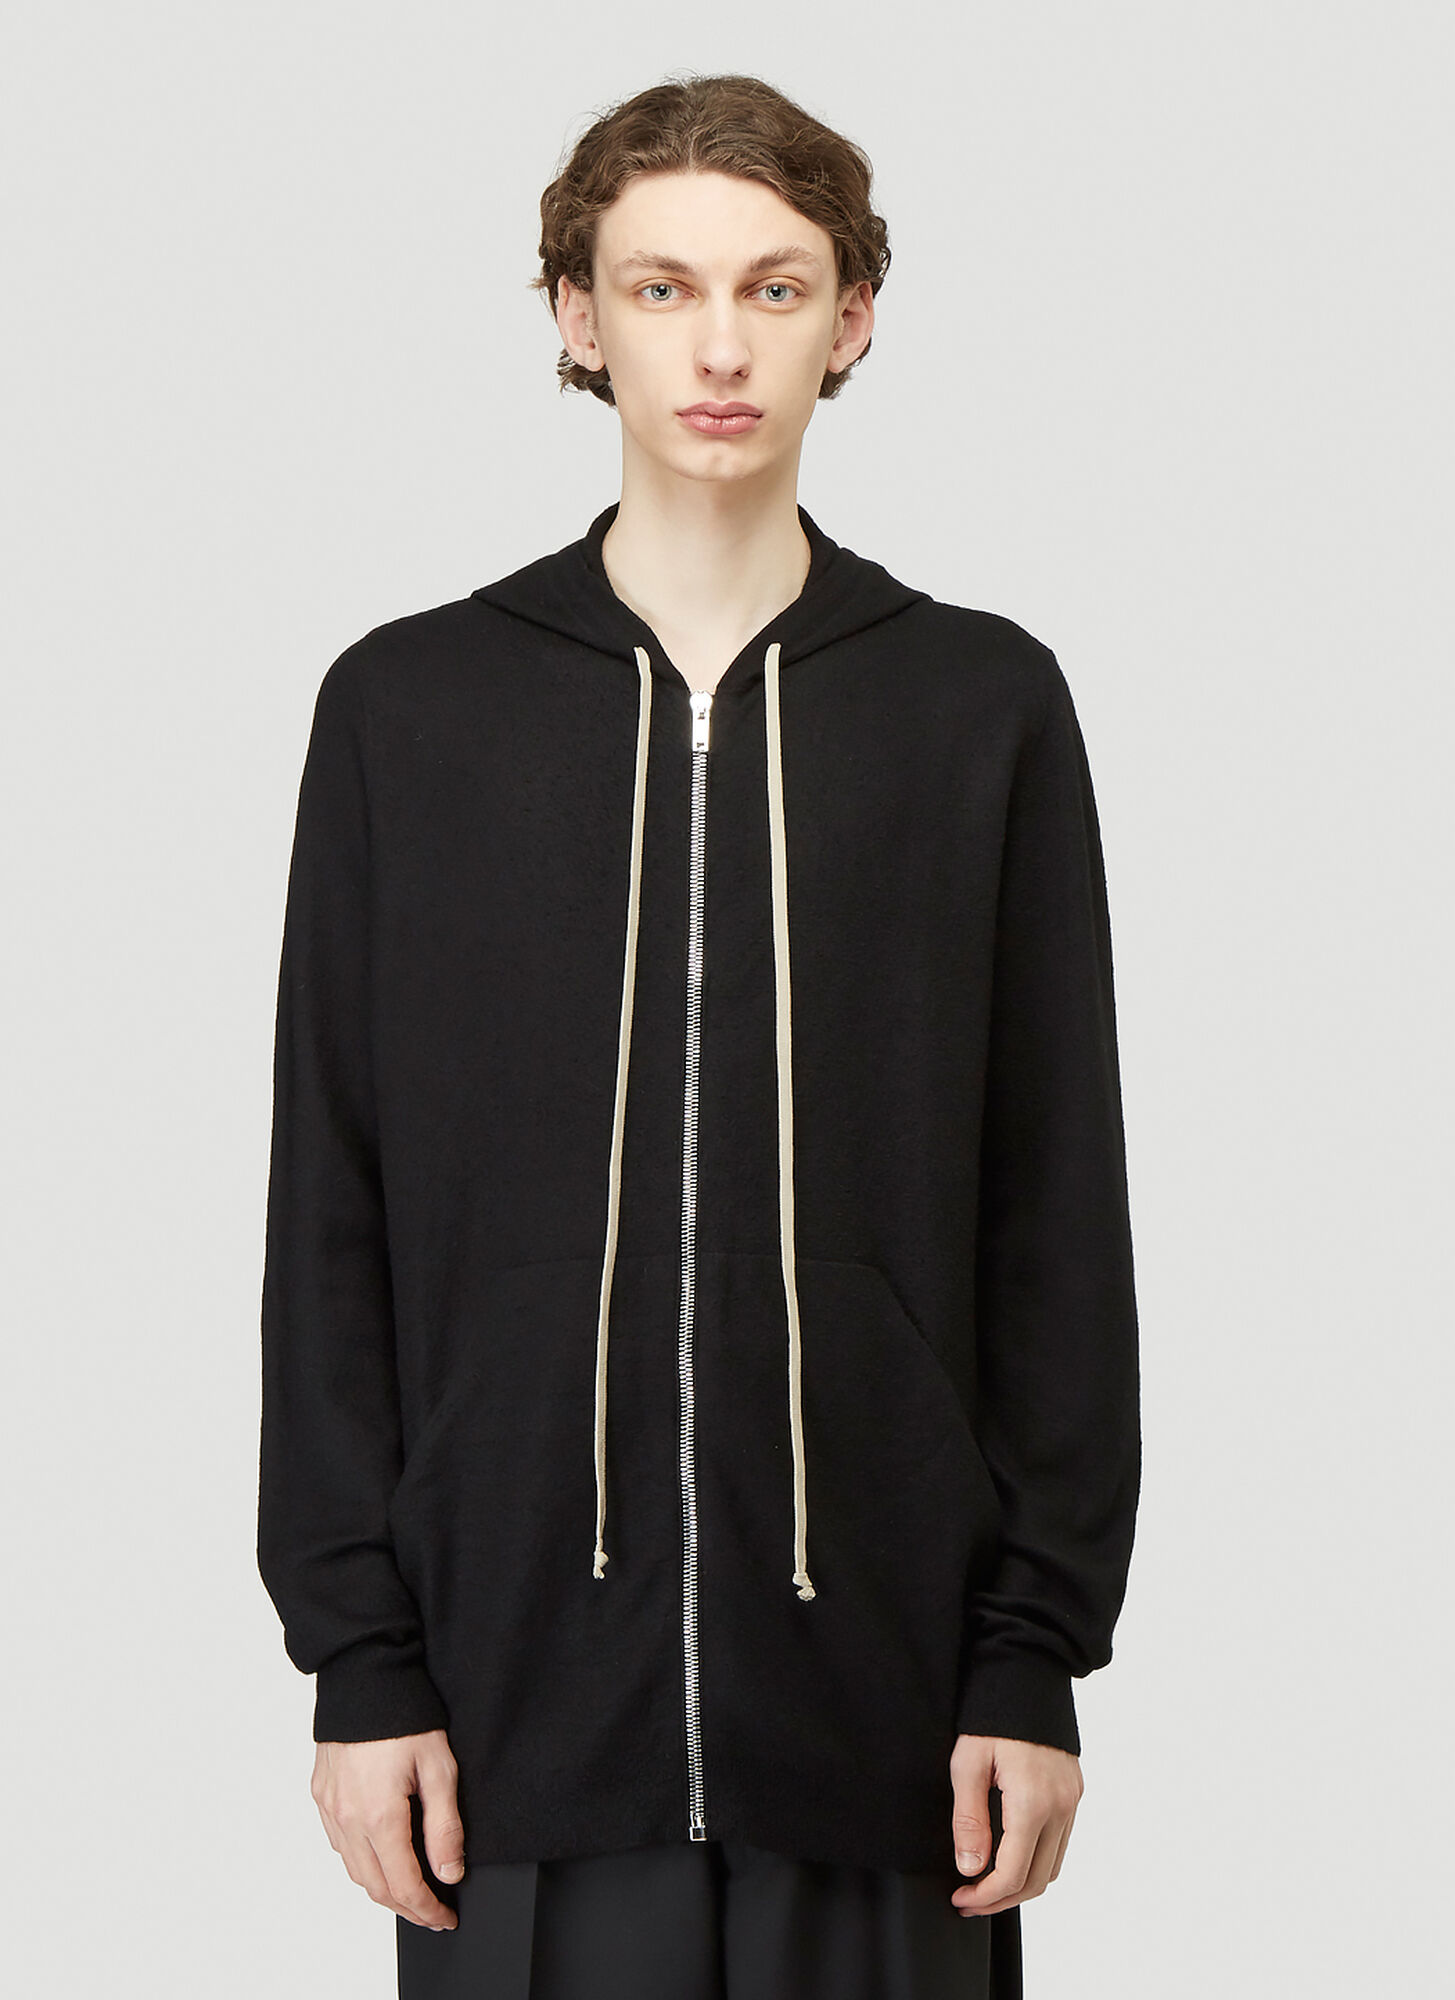 Rick Owens Zip-Up Hooded Sweater in Black size L